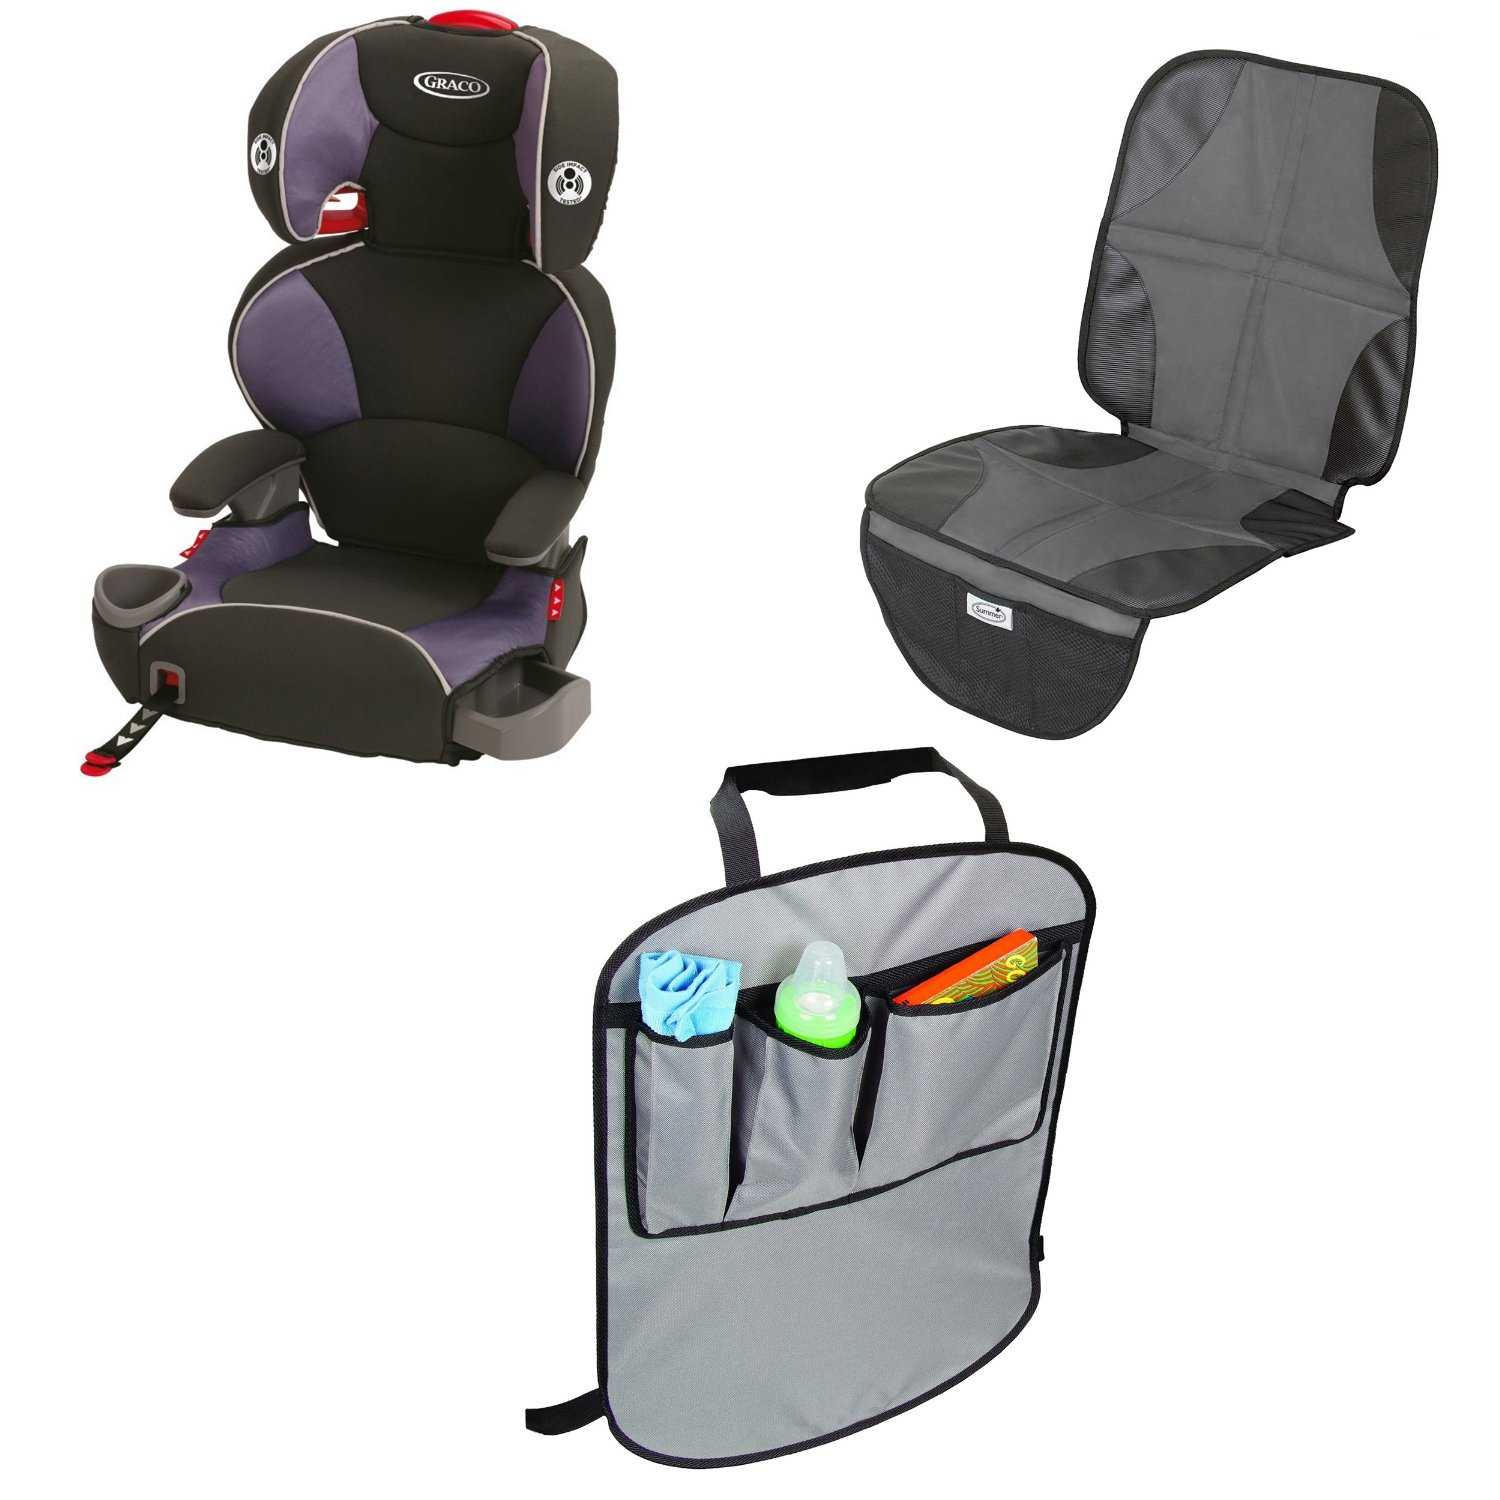 Graco AFFIX Youth Booster Seat with Latch System & Car Se...